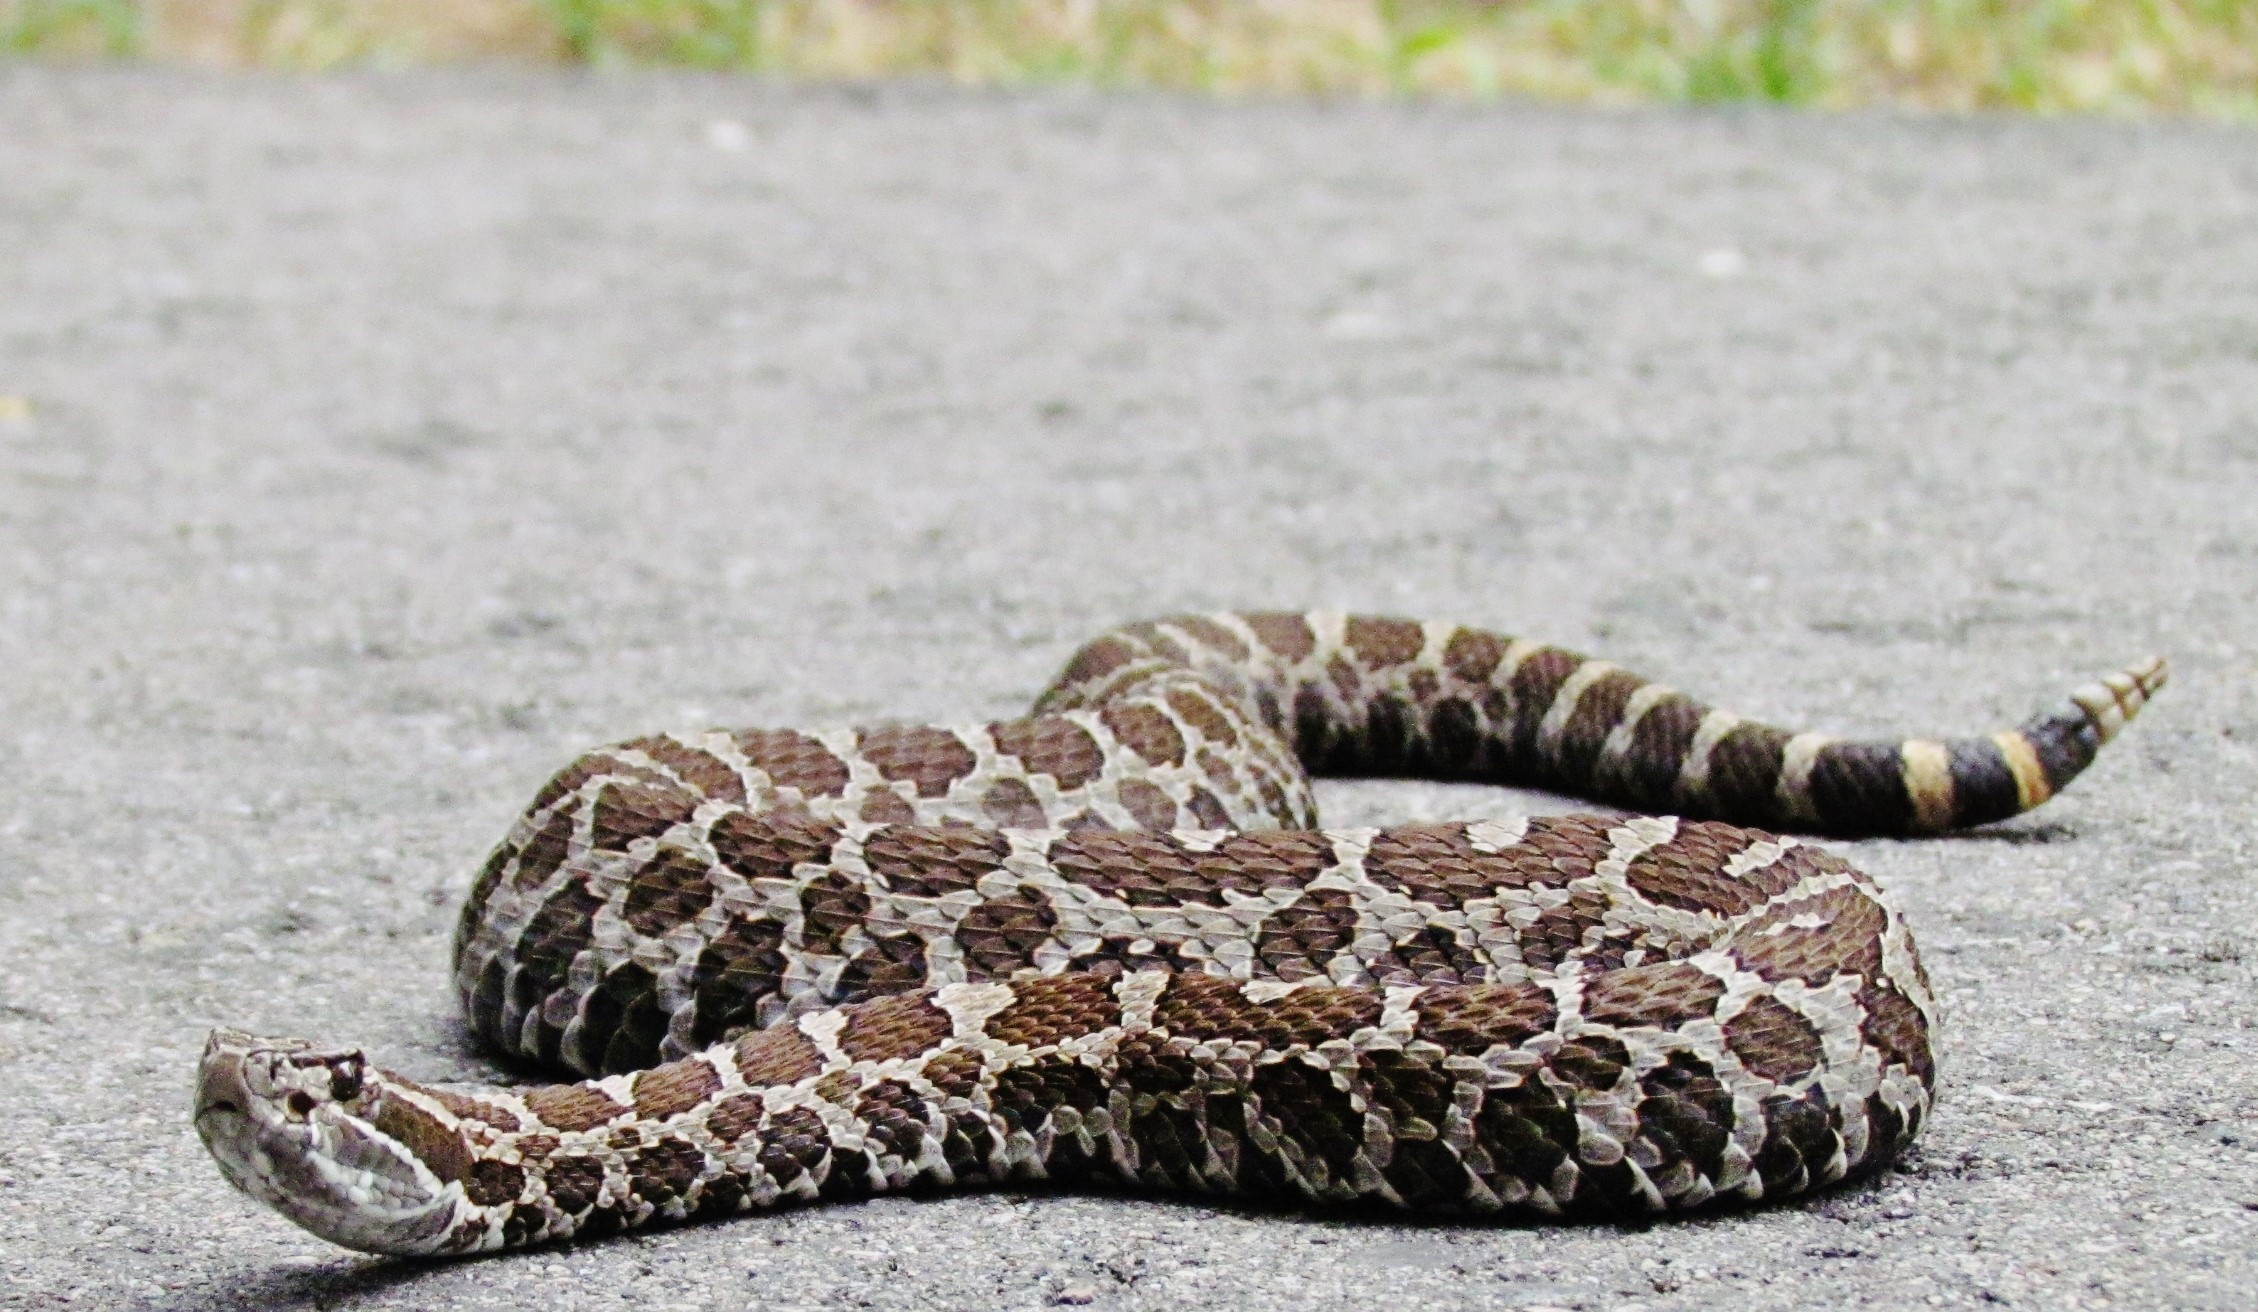 brown spotted rattlesnake